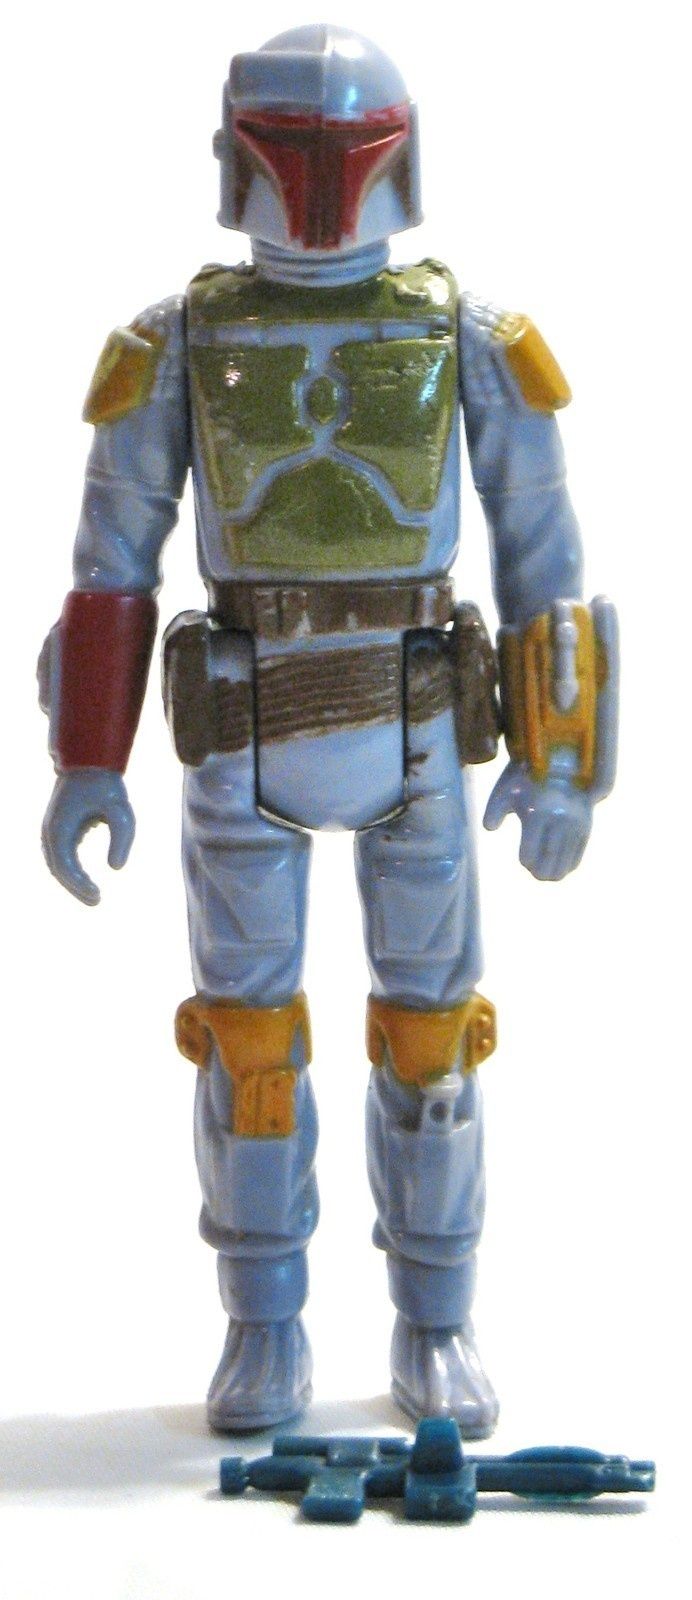 Star Wars Boba Fett 1979 vintage action figure